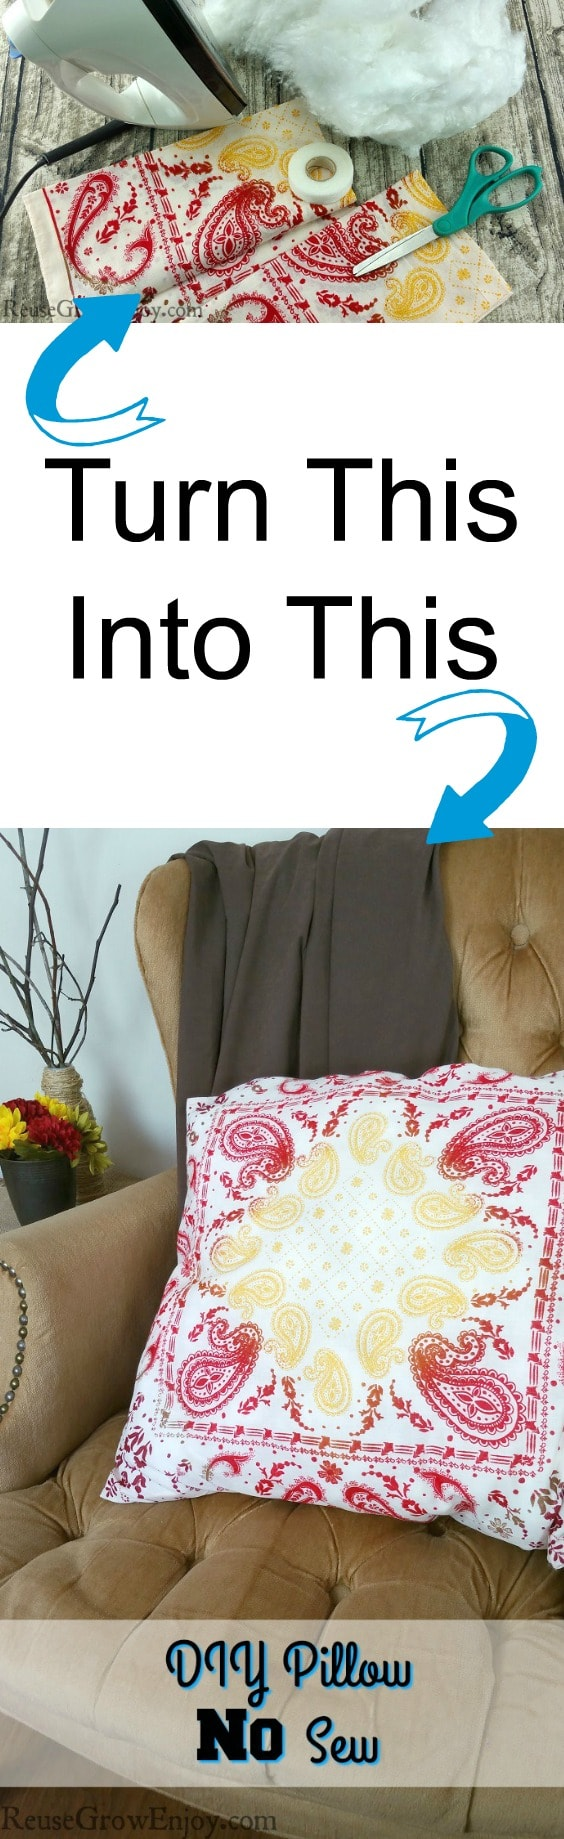 DIY Pillow No Sew